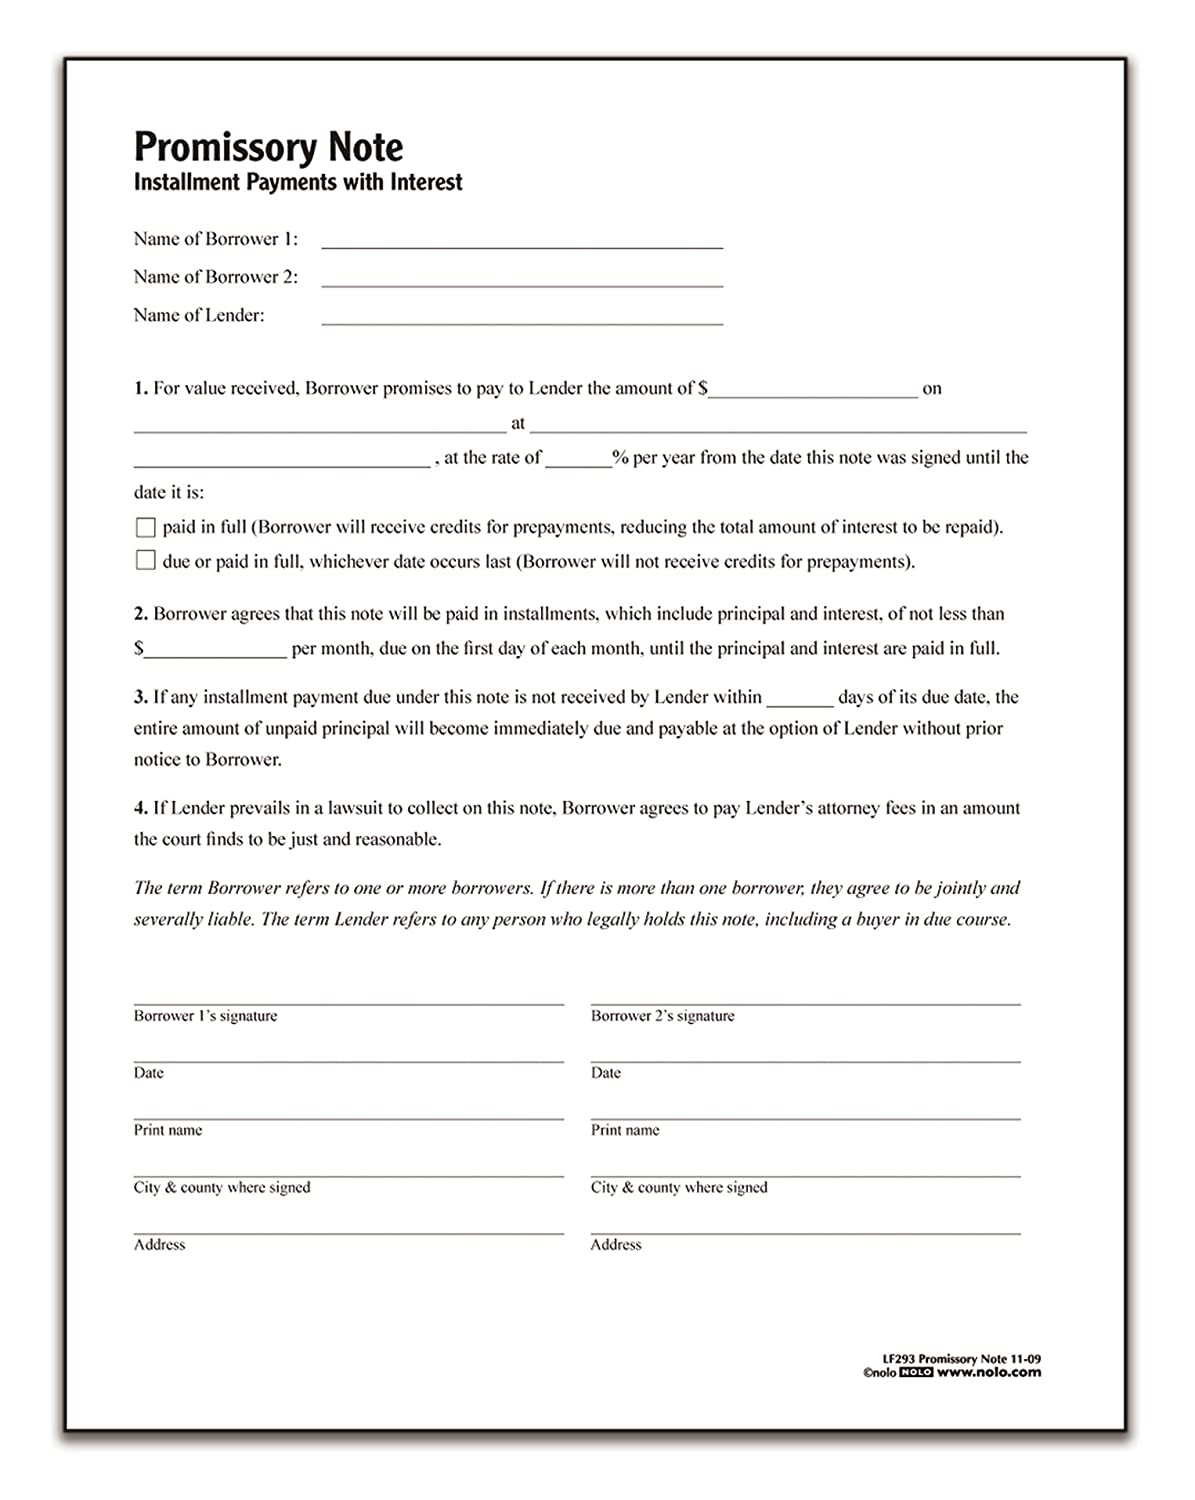 Amazon Adams Promissory Note Forms And Instructions Lf293